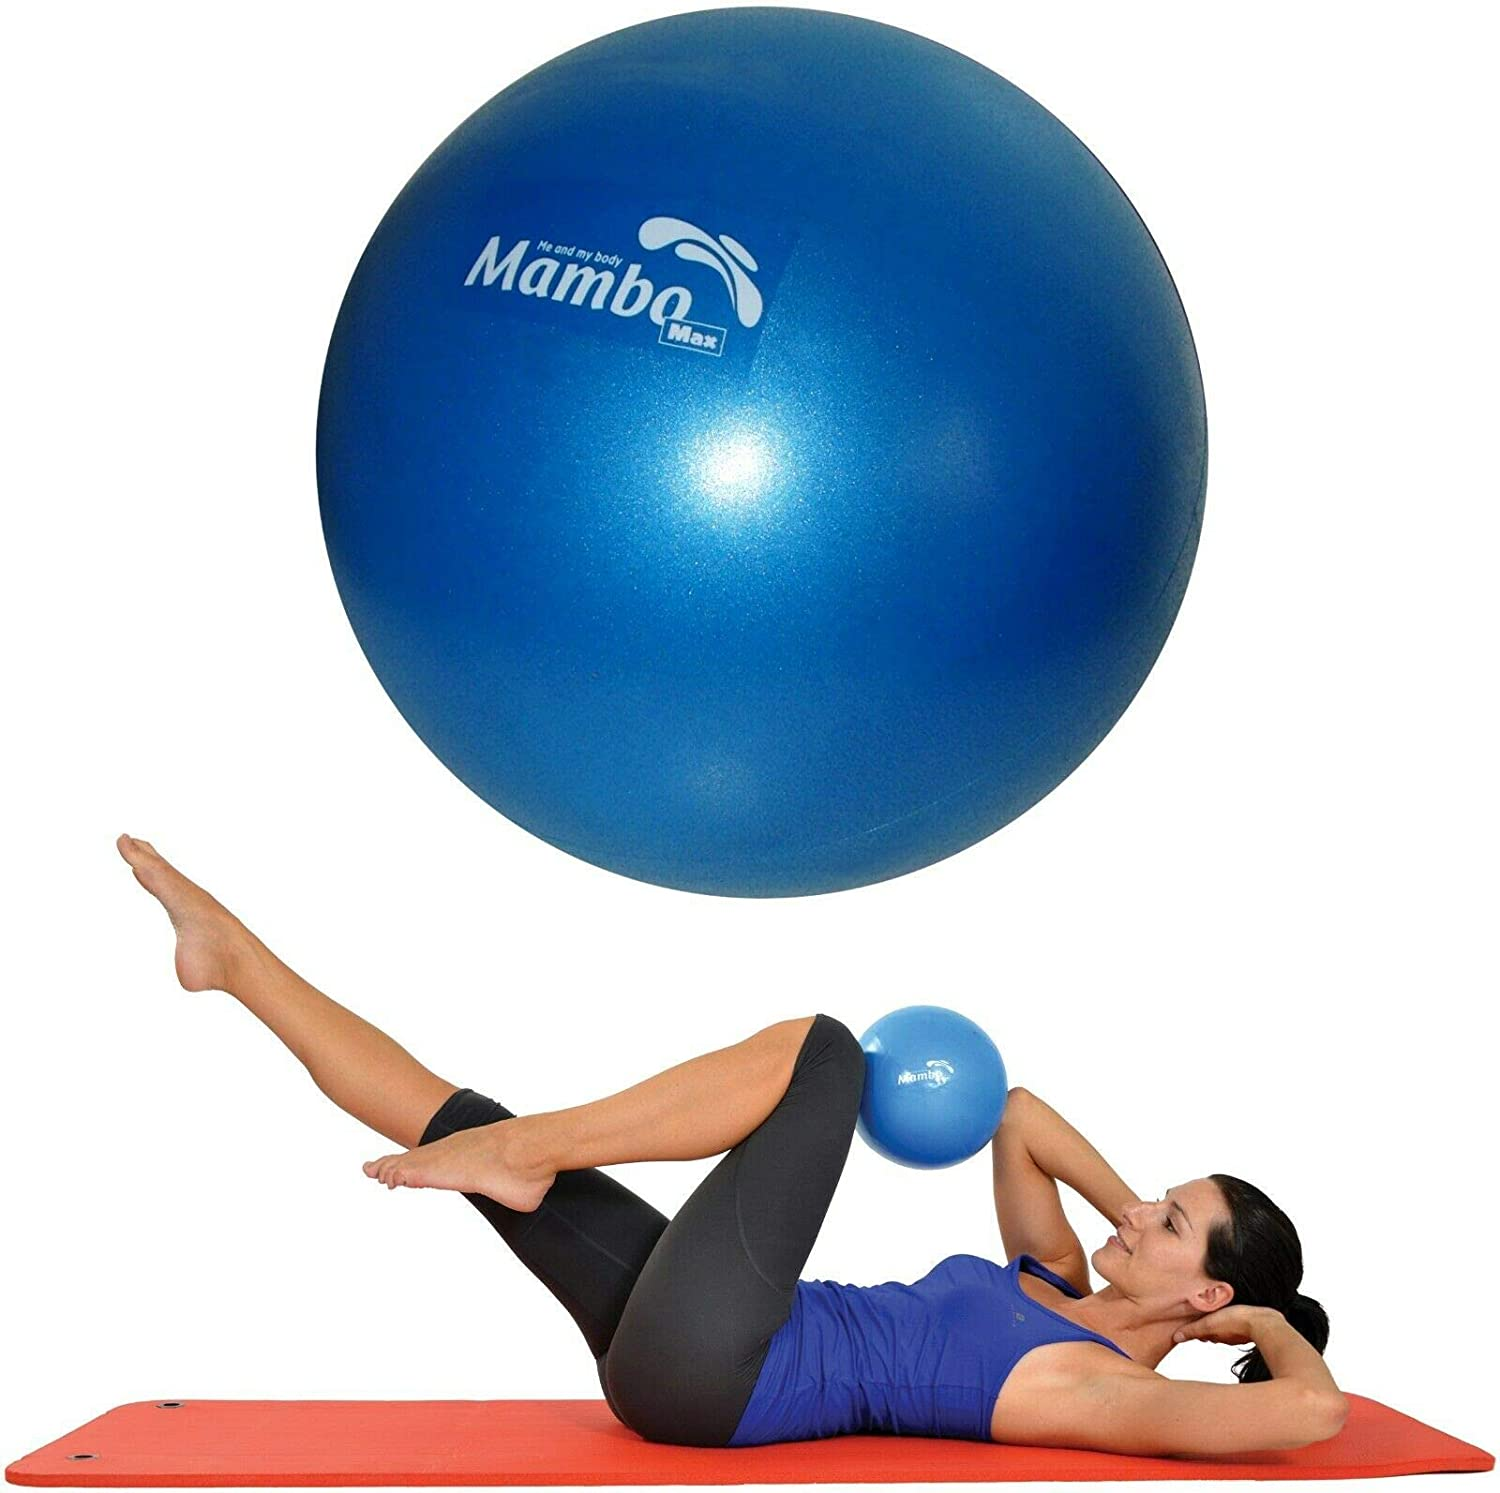 Gymnic 04-010103 Over Ball Slowmotion - Pelotas (26 cm): Amazon.es ...